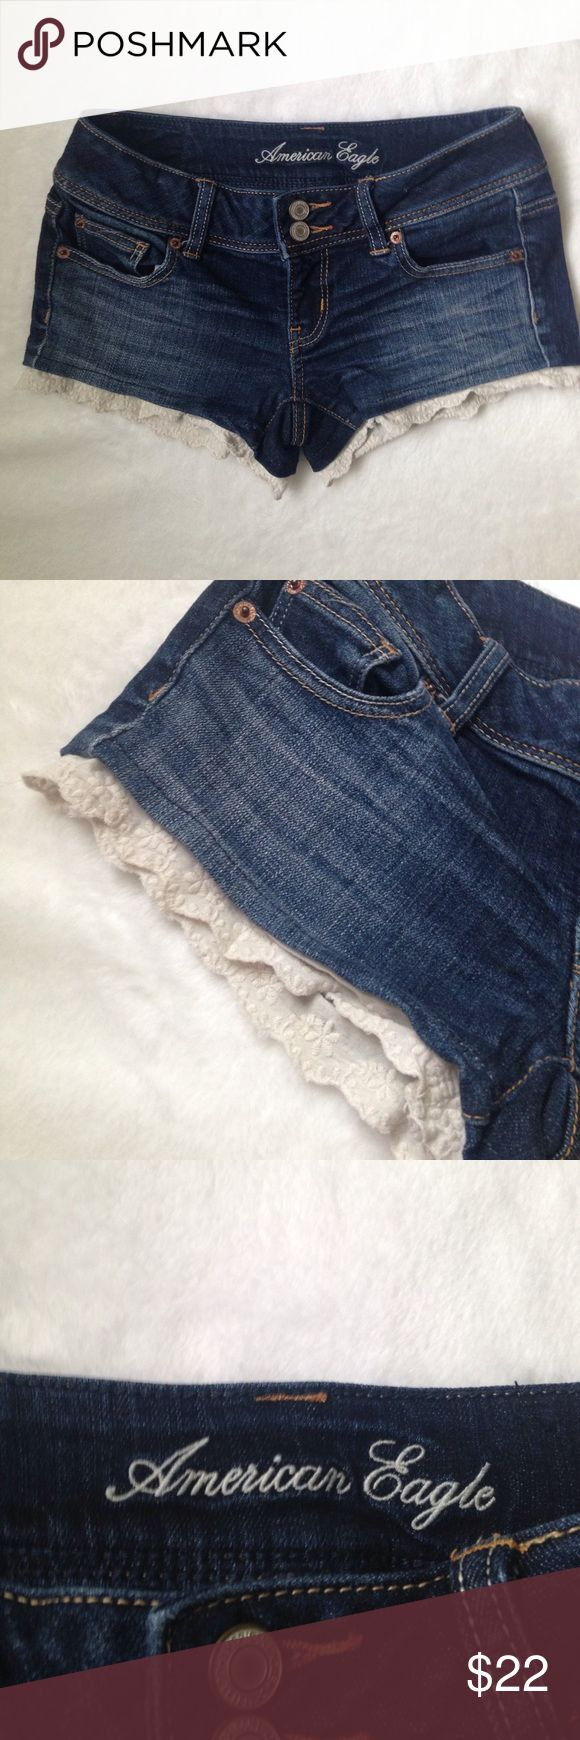 """American Eagle Outfitters denim shorts American Eagle Outfitters denim shorts. Cream color lace detail on bottom. Pretty and flirty. Flat lay measurements. Waist 14"""" American Eagle Outfitters Shorts Jean Shorts"""